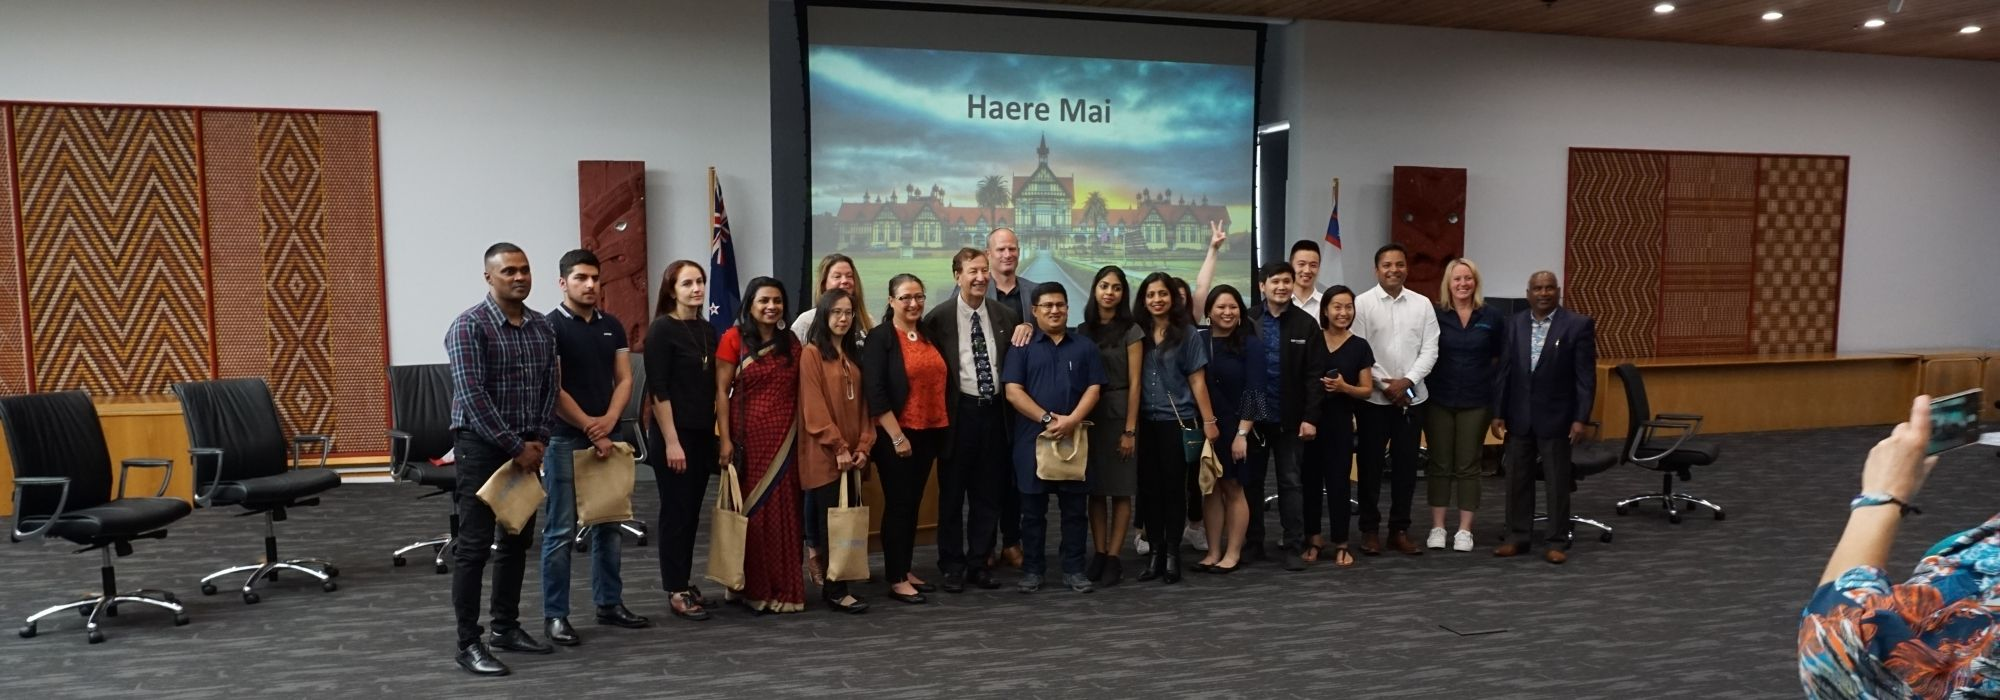 Christmas event celebrates and supports city's international students